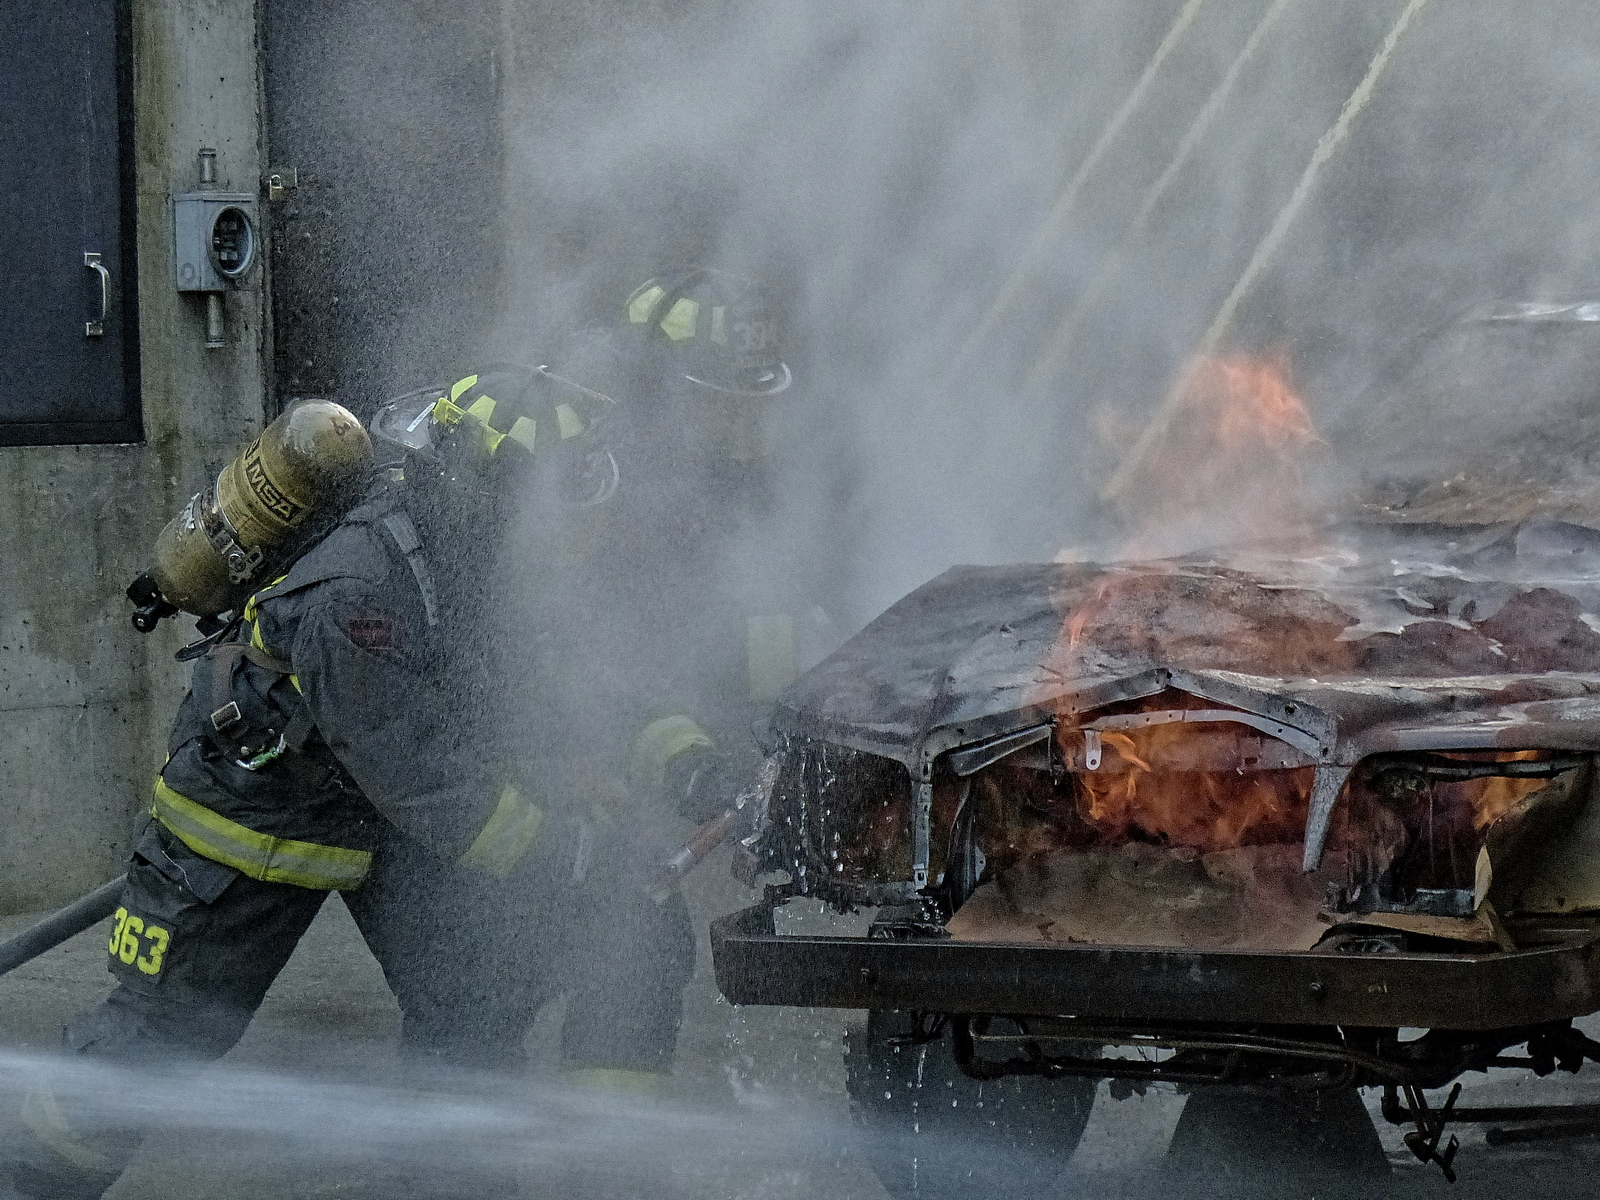 Prying open the hood of a car on fire